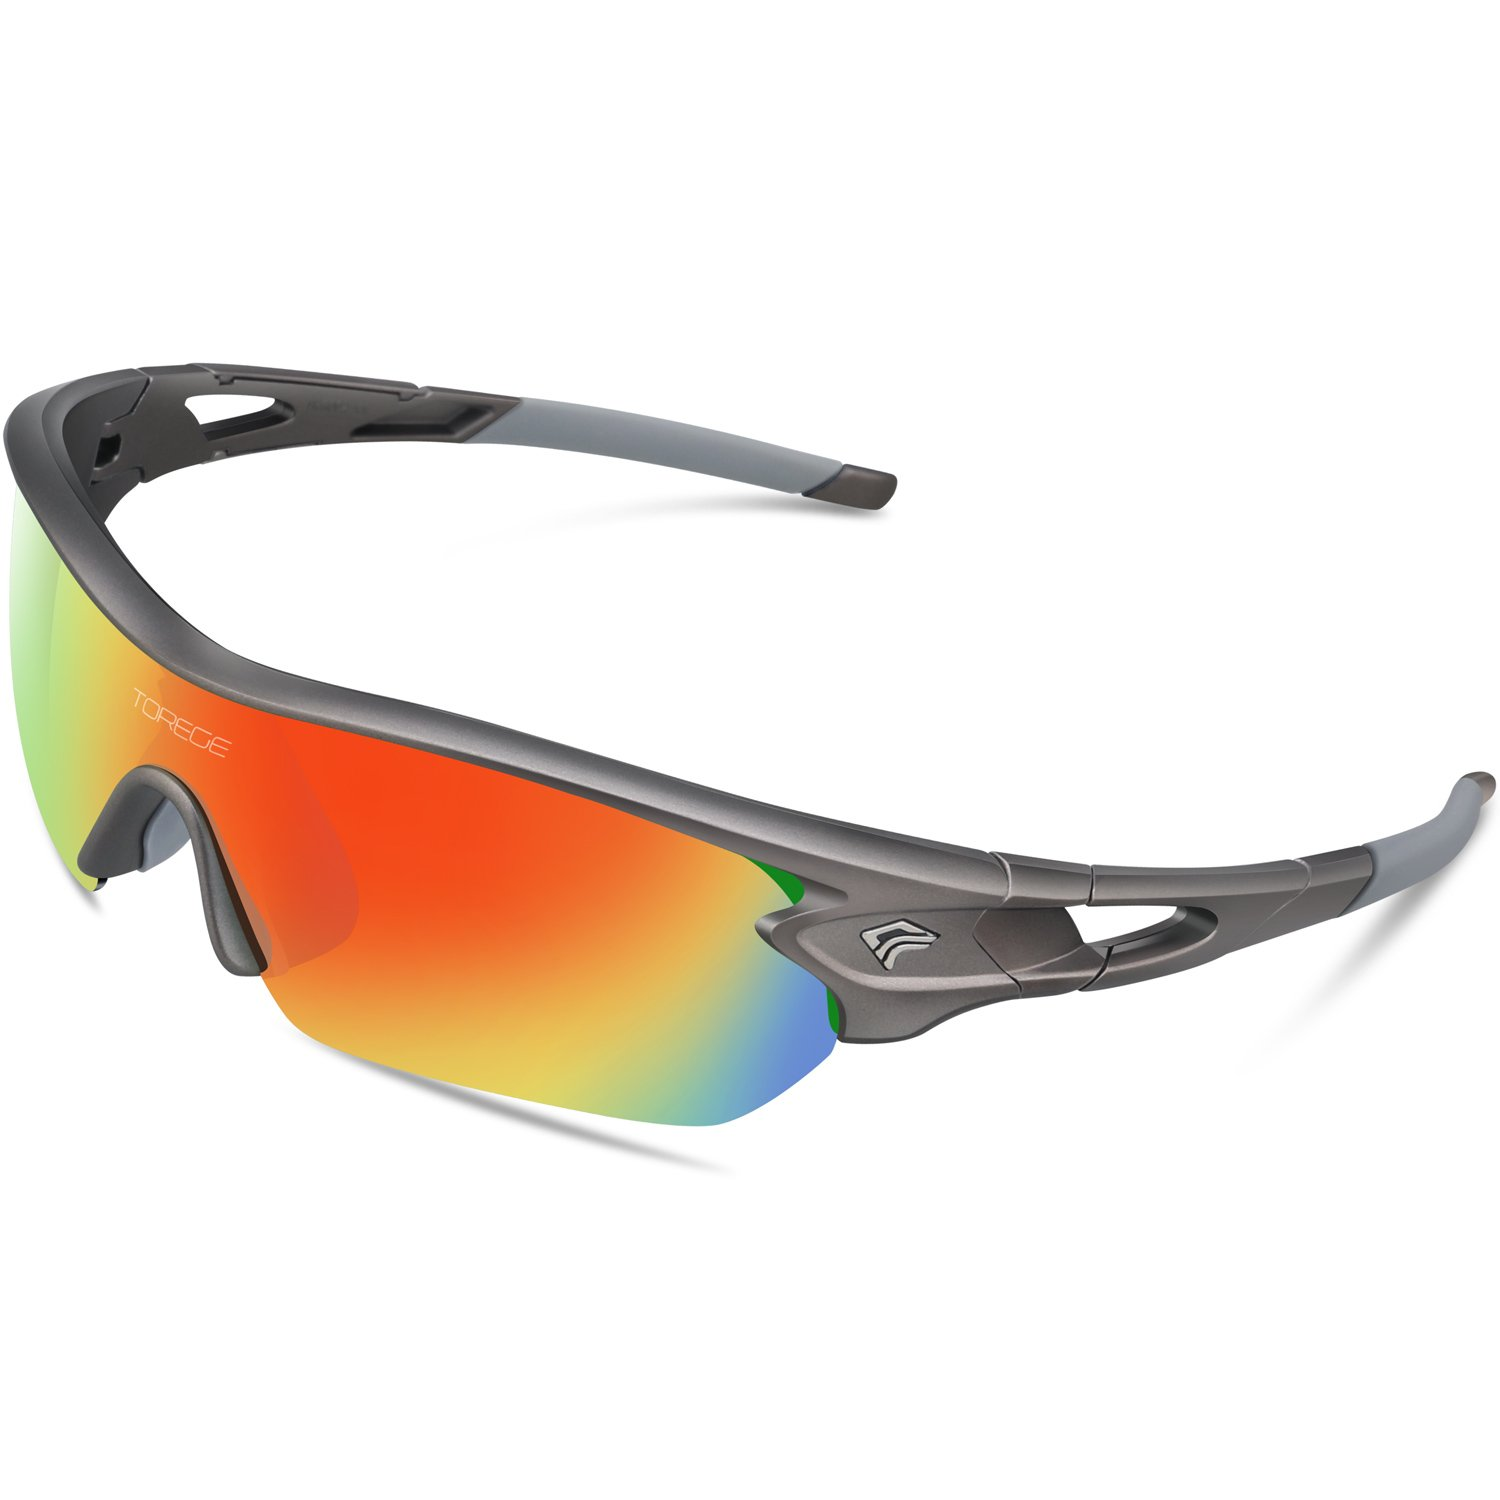 2b02aec2a5 TOREGE Polarized Sports Sunglasses With 5 Interchangeable Lenes for Men  Women Cycling Running Driving Fishing Golf Baseball Glasses TR002 (Grey)   ...